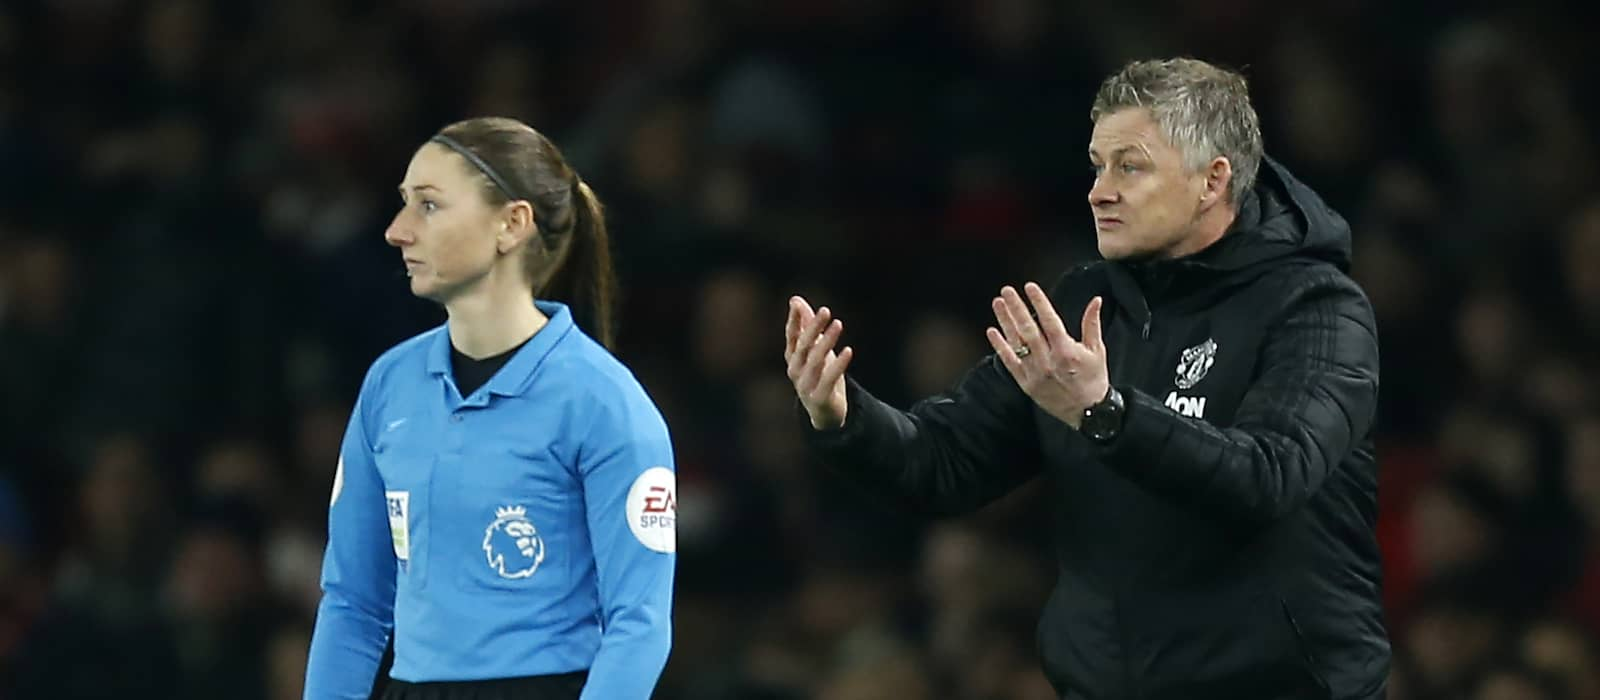 Manchester United fans call for Ole Gunnar Solskjaer to be sacked